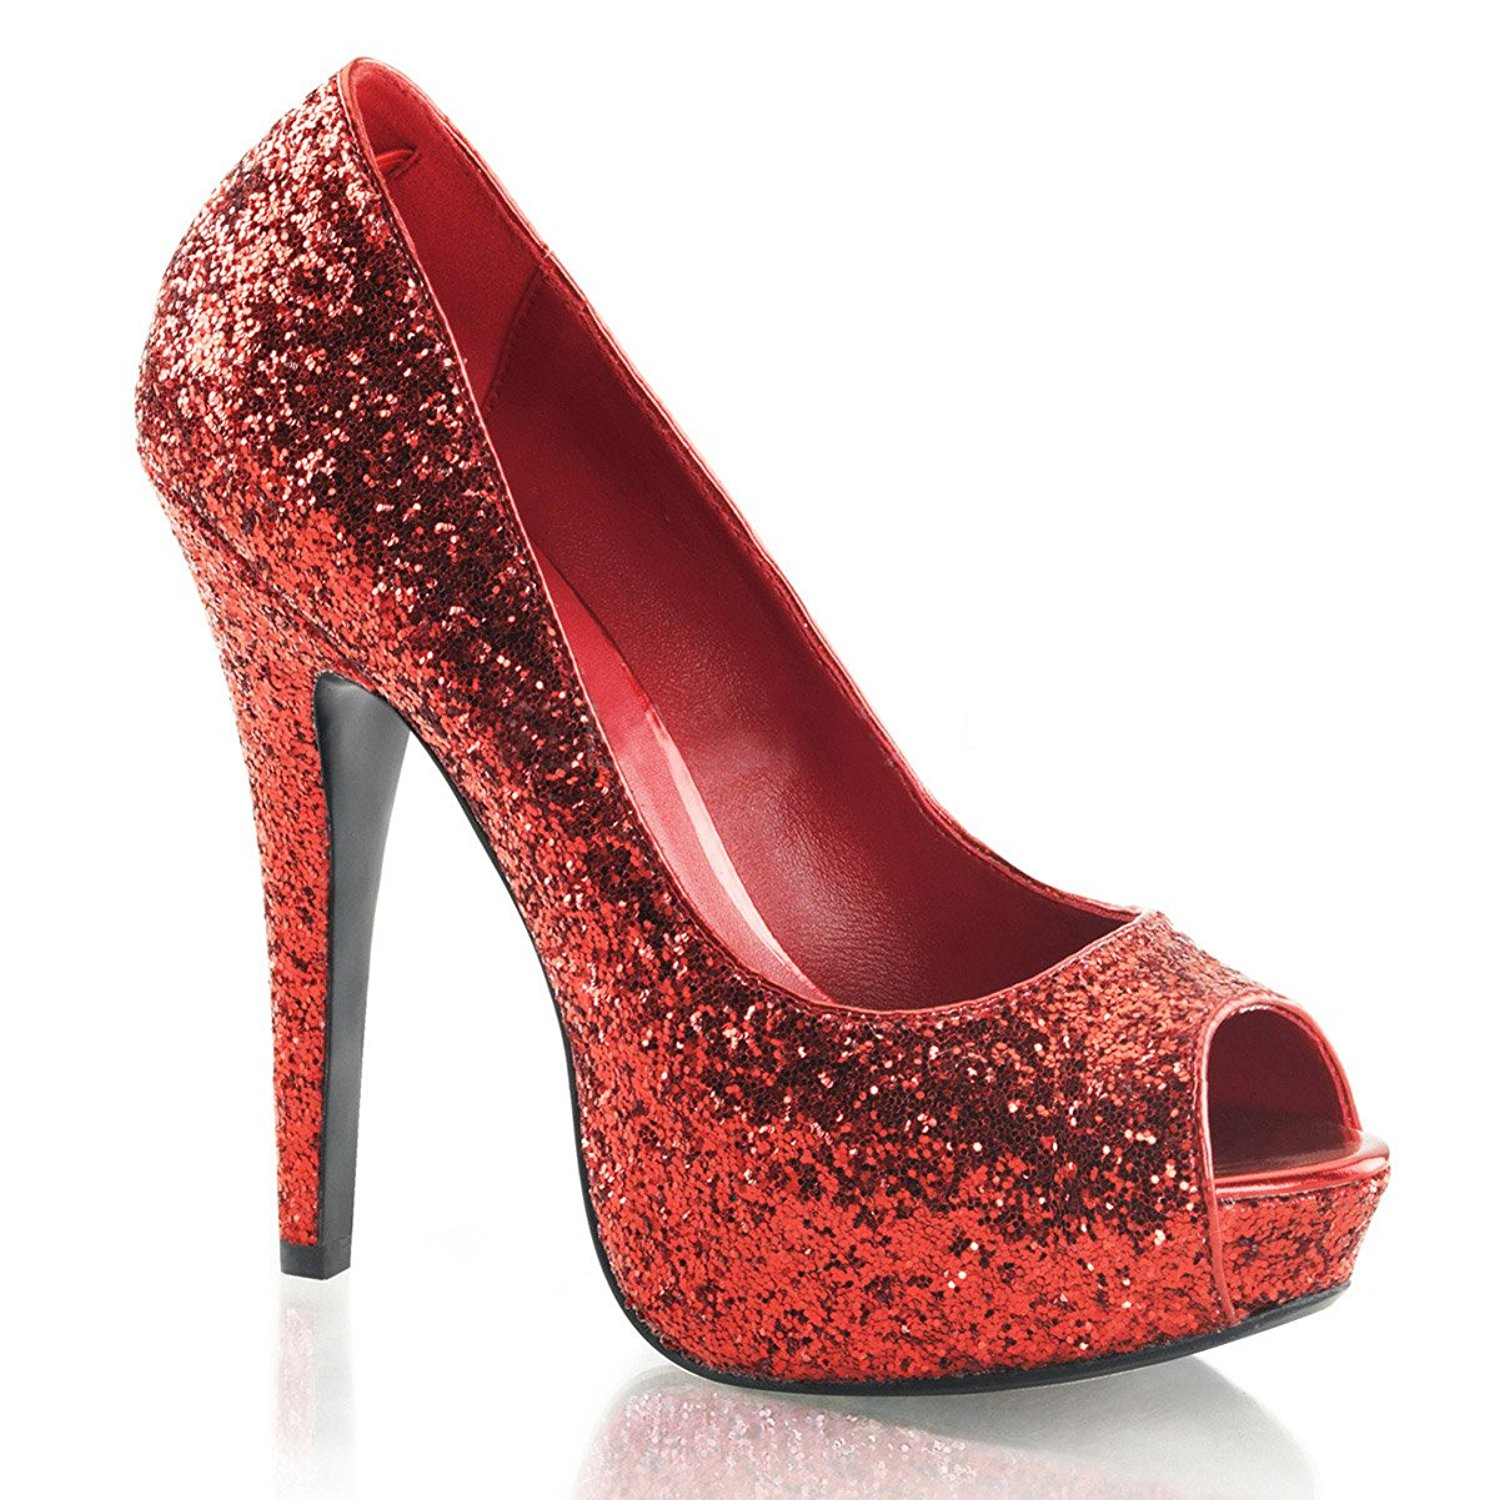 sparkly heels amazon.com | womens red glitter peep toe pumps sparkly shoes with 5 inch sxiluki